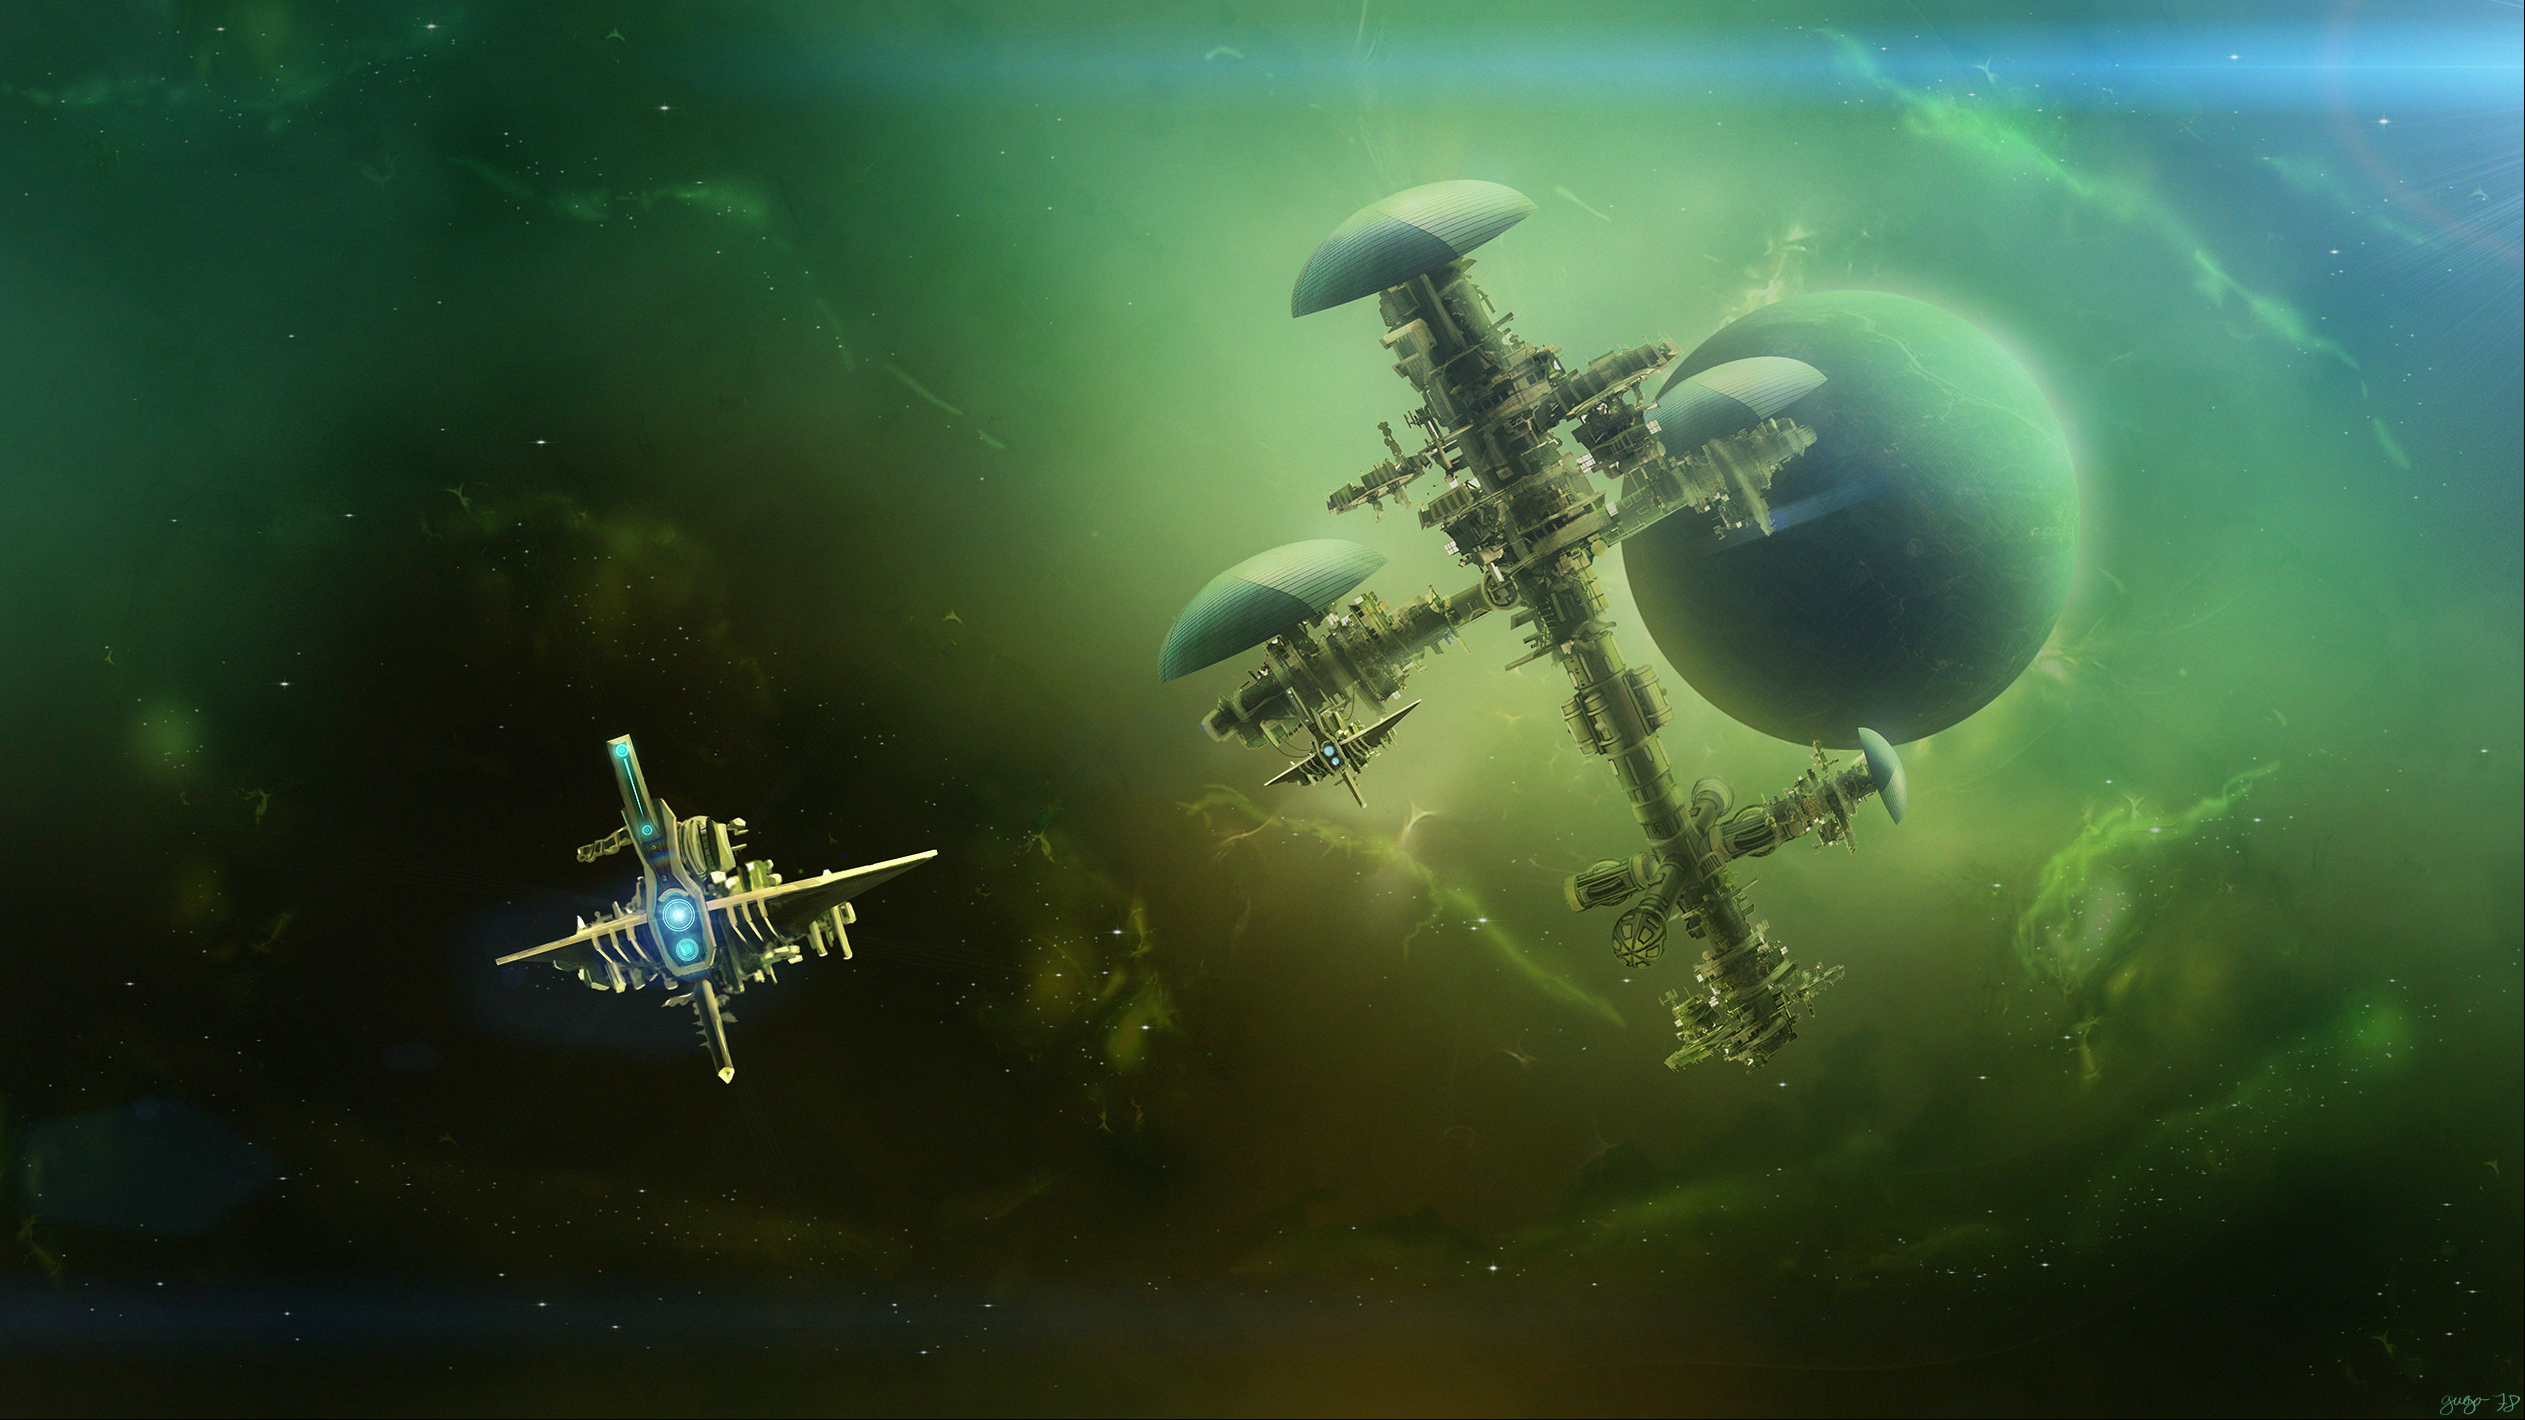 Space Station Hd Wallpaper Background Image 2525x1420